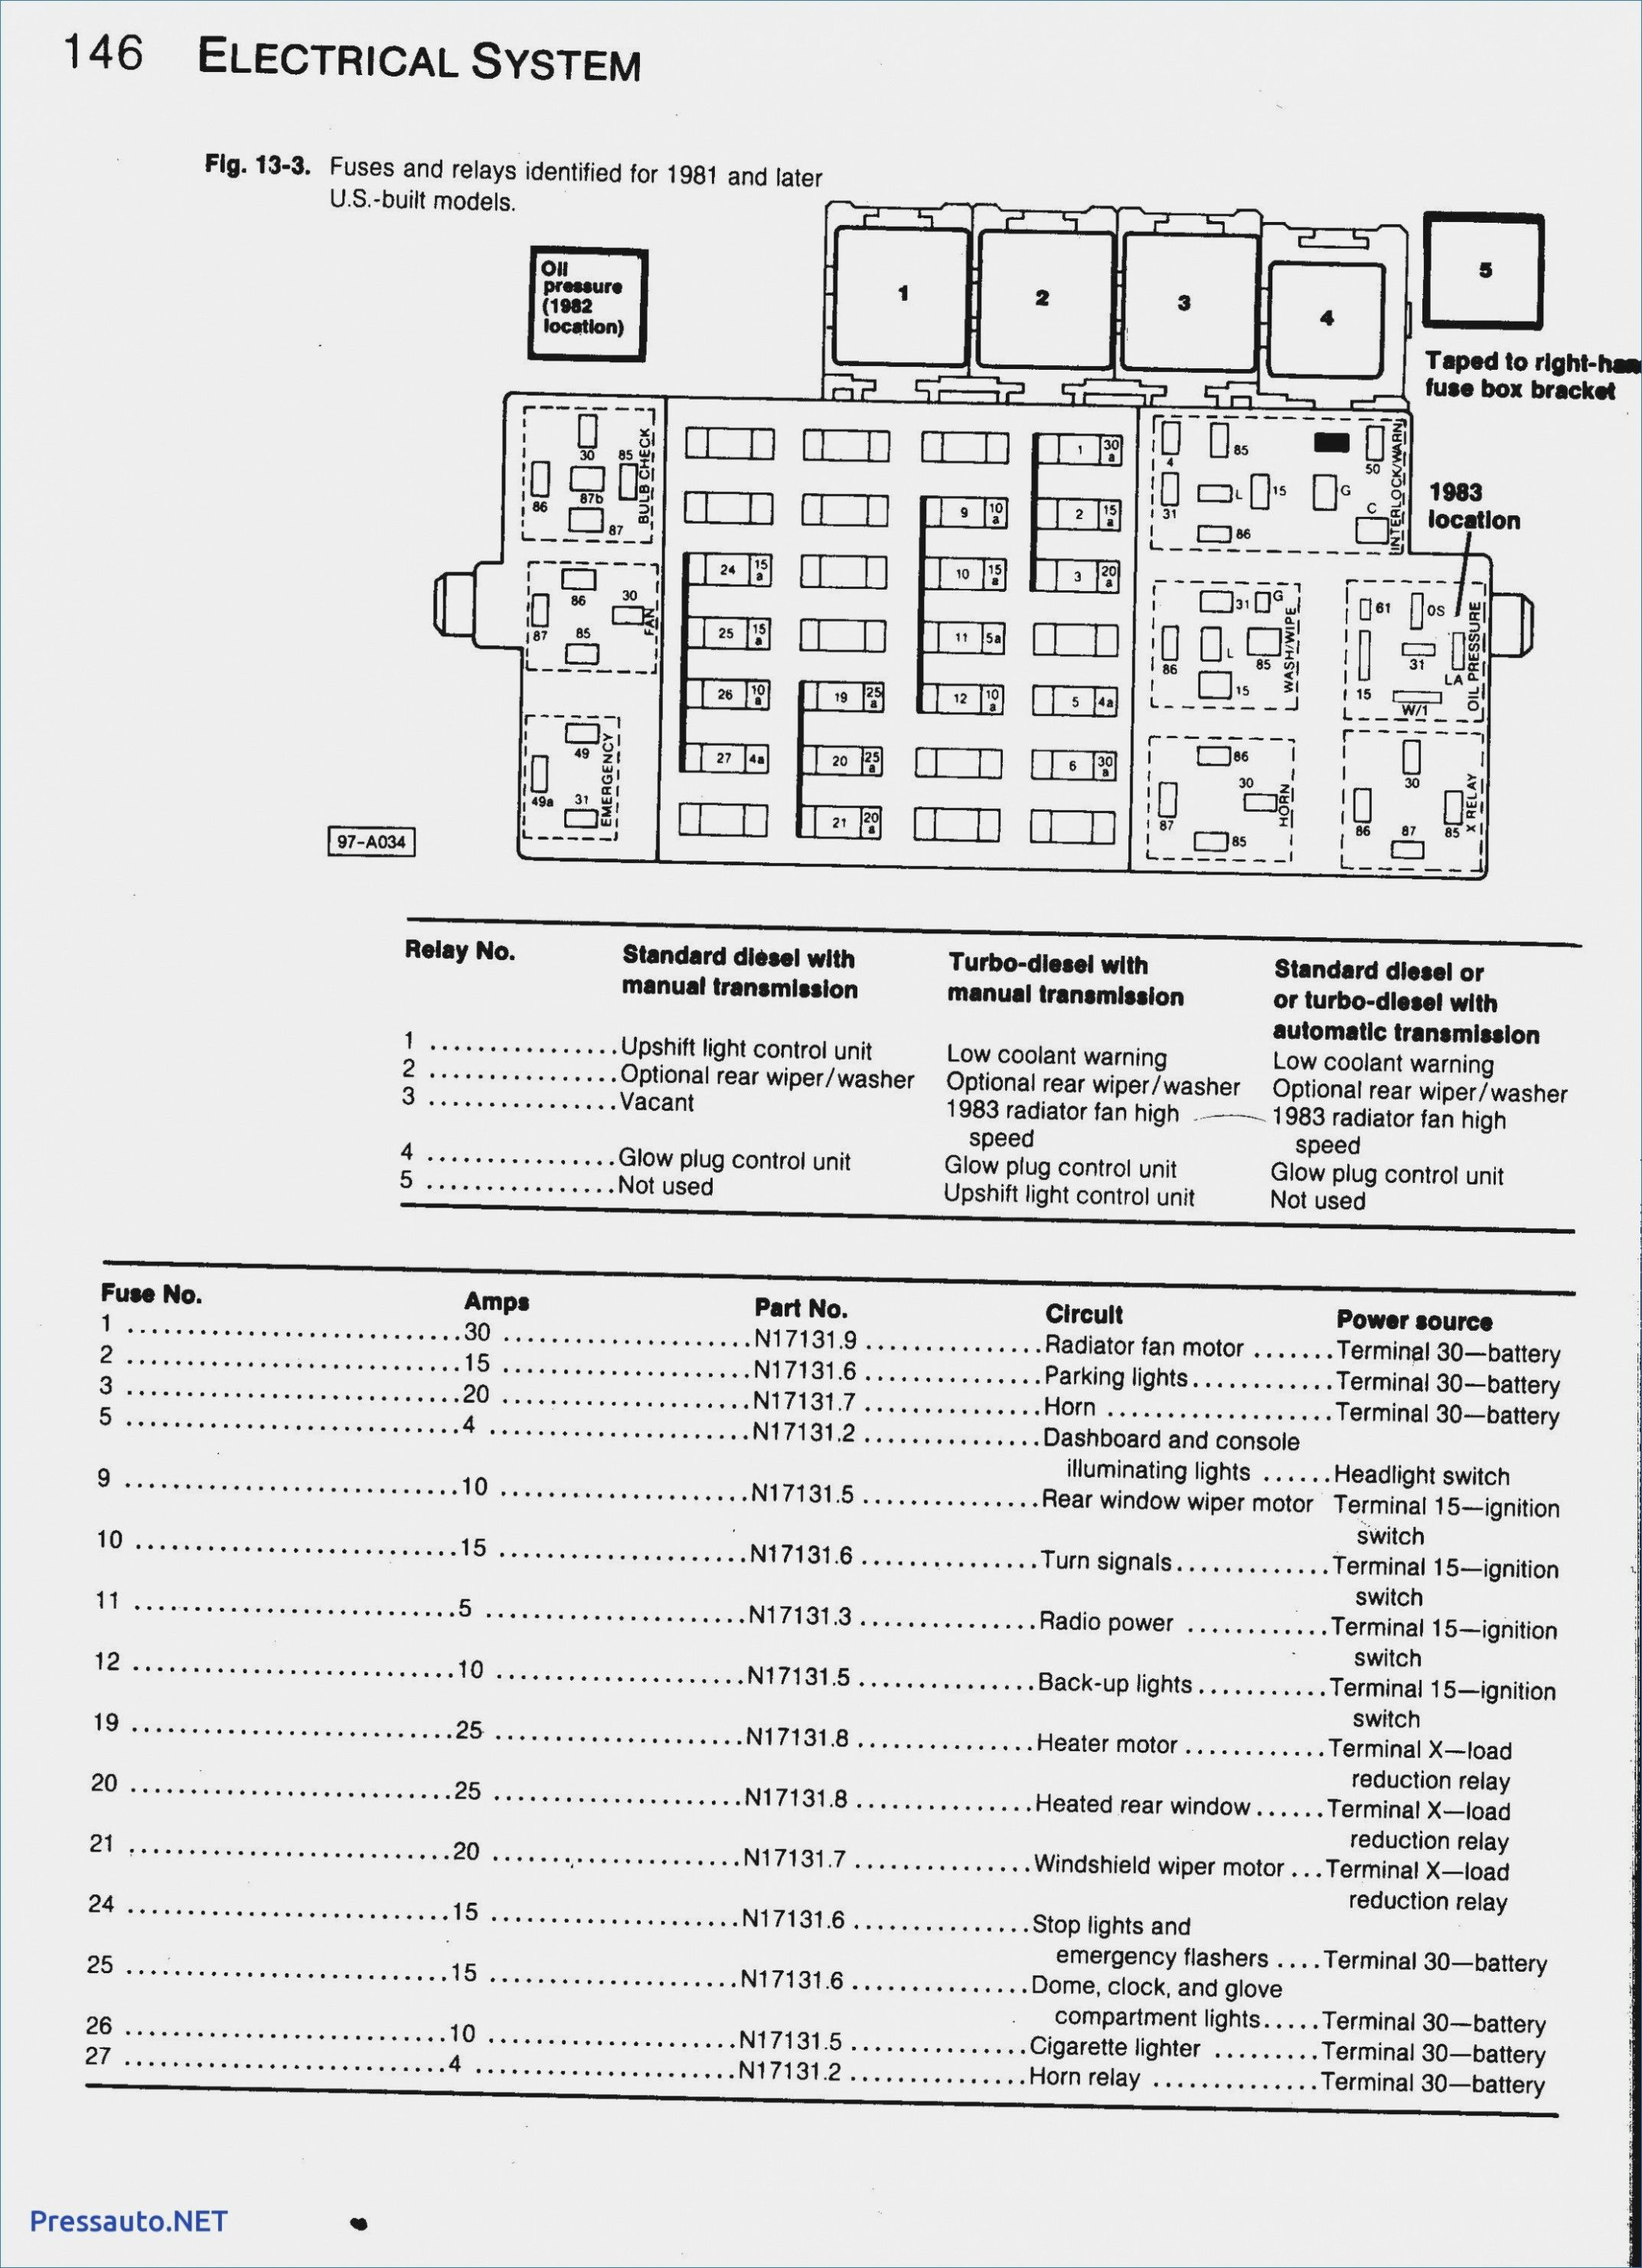 Vw Jetta Tdi Fuse Box Diagram Wiring Diagram For Roper Dryer -  diagramford.terukie.mastershop24.deBegeboy Schematics Wiring Diagram